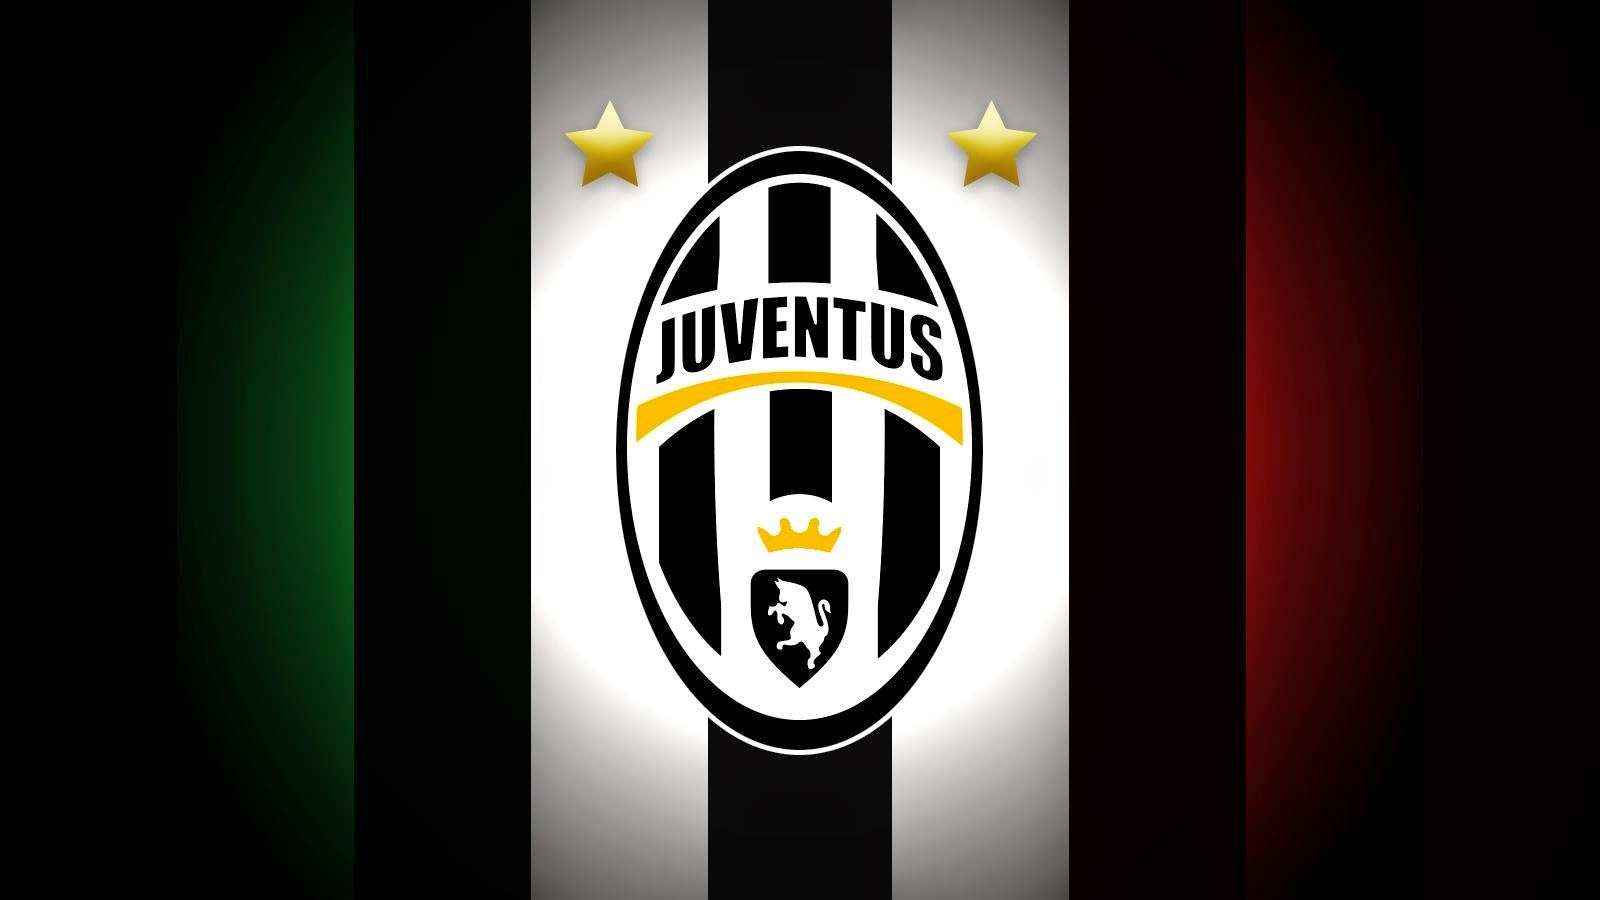 juventus - photo #14